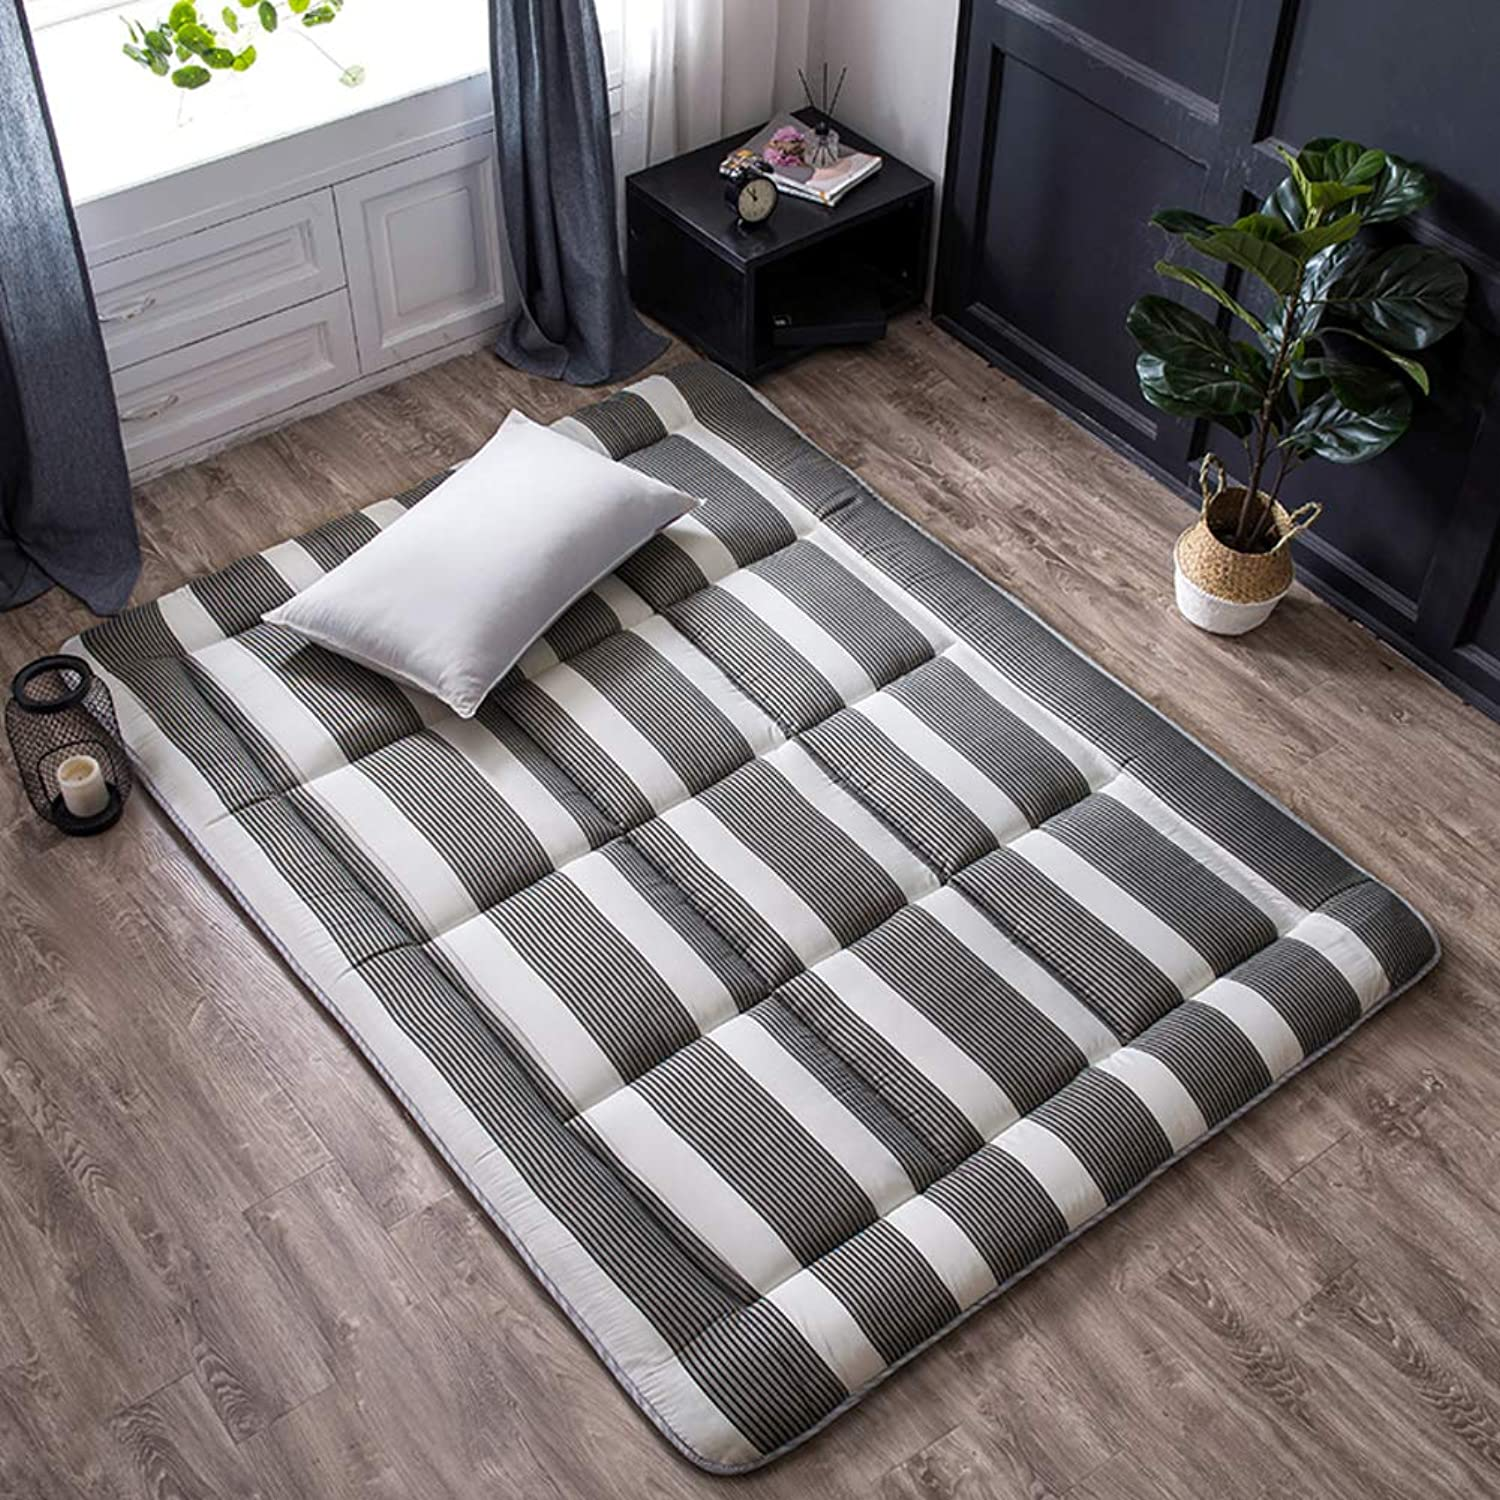 Futon Mattress Topper, Fiber Filling Quilted Hypoallergenic Folding Sofa Bed Mattress pad Tatami Floor Mat Dorm Bedroom -A 100x200cm(39x79inch)